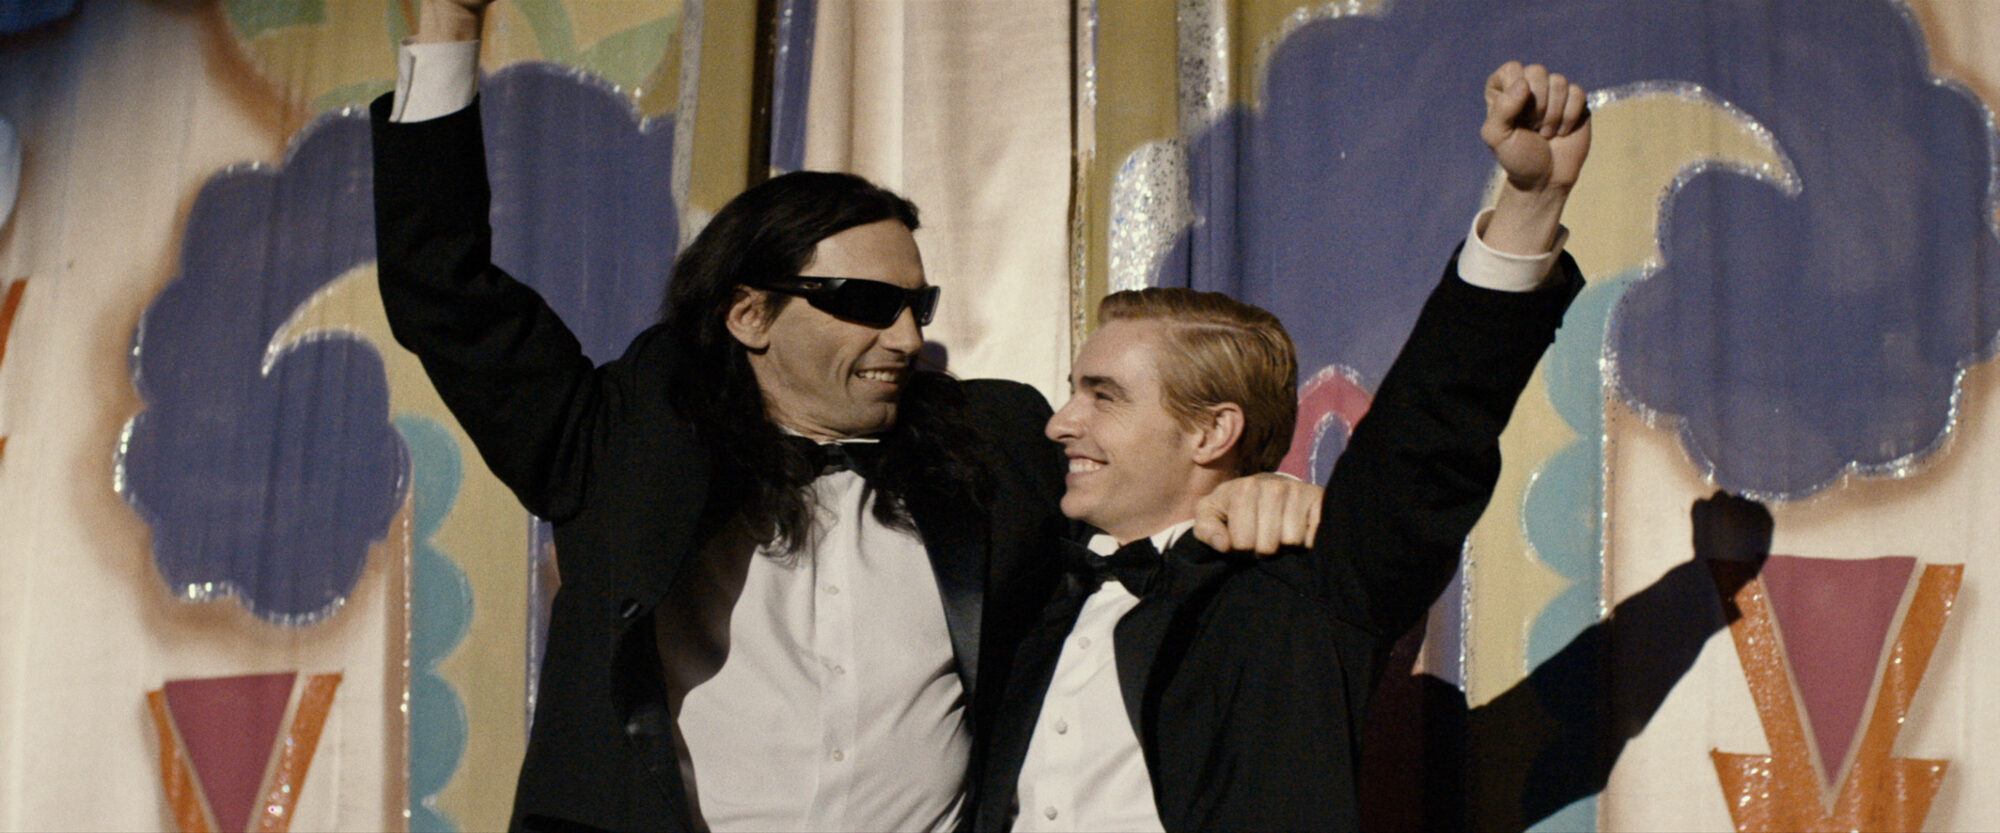 The Disaster Artist Wide2